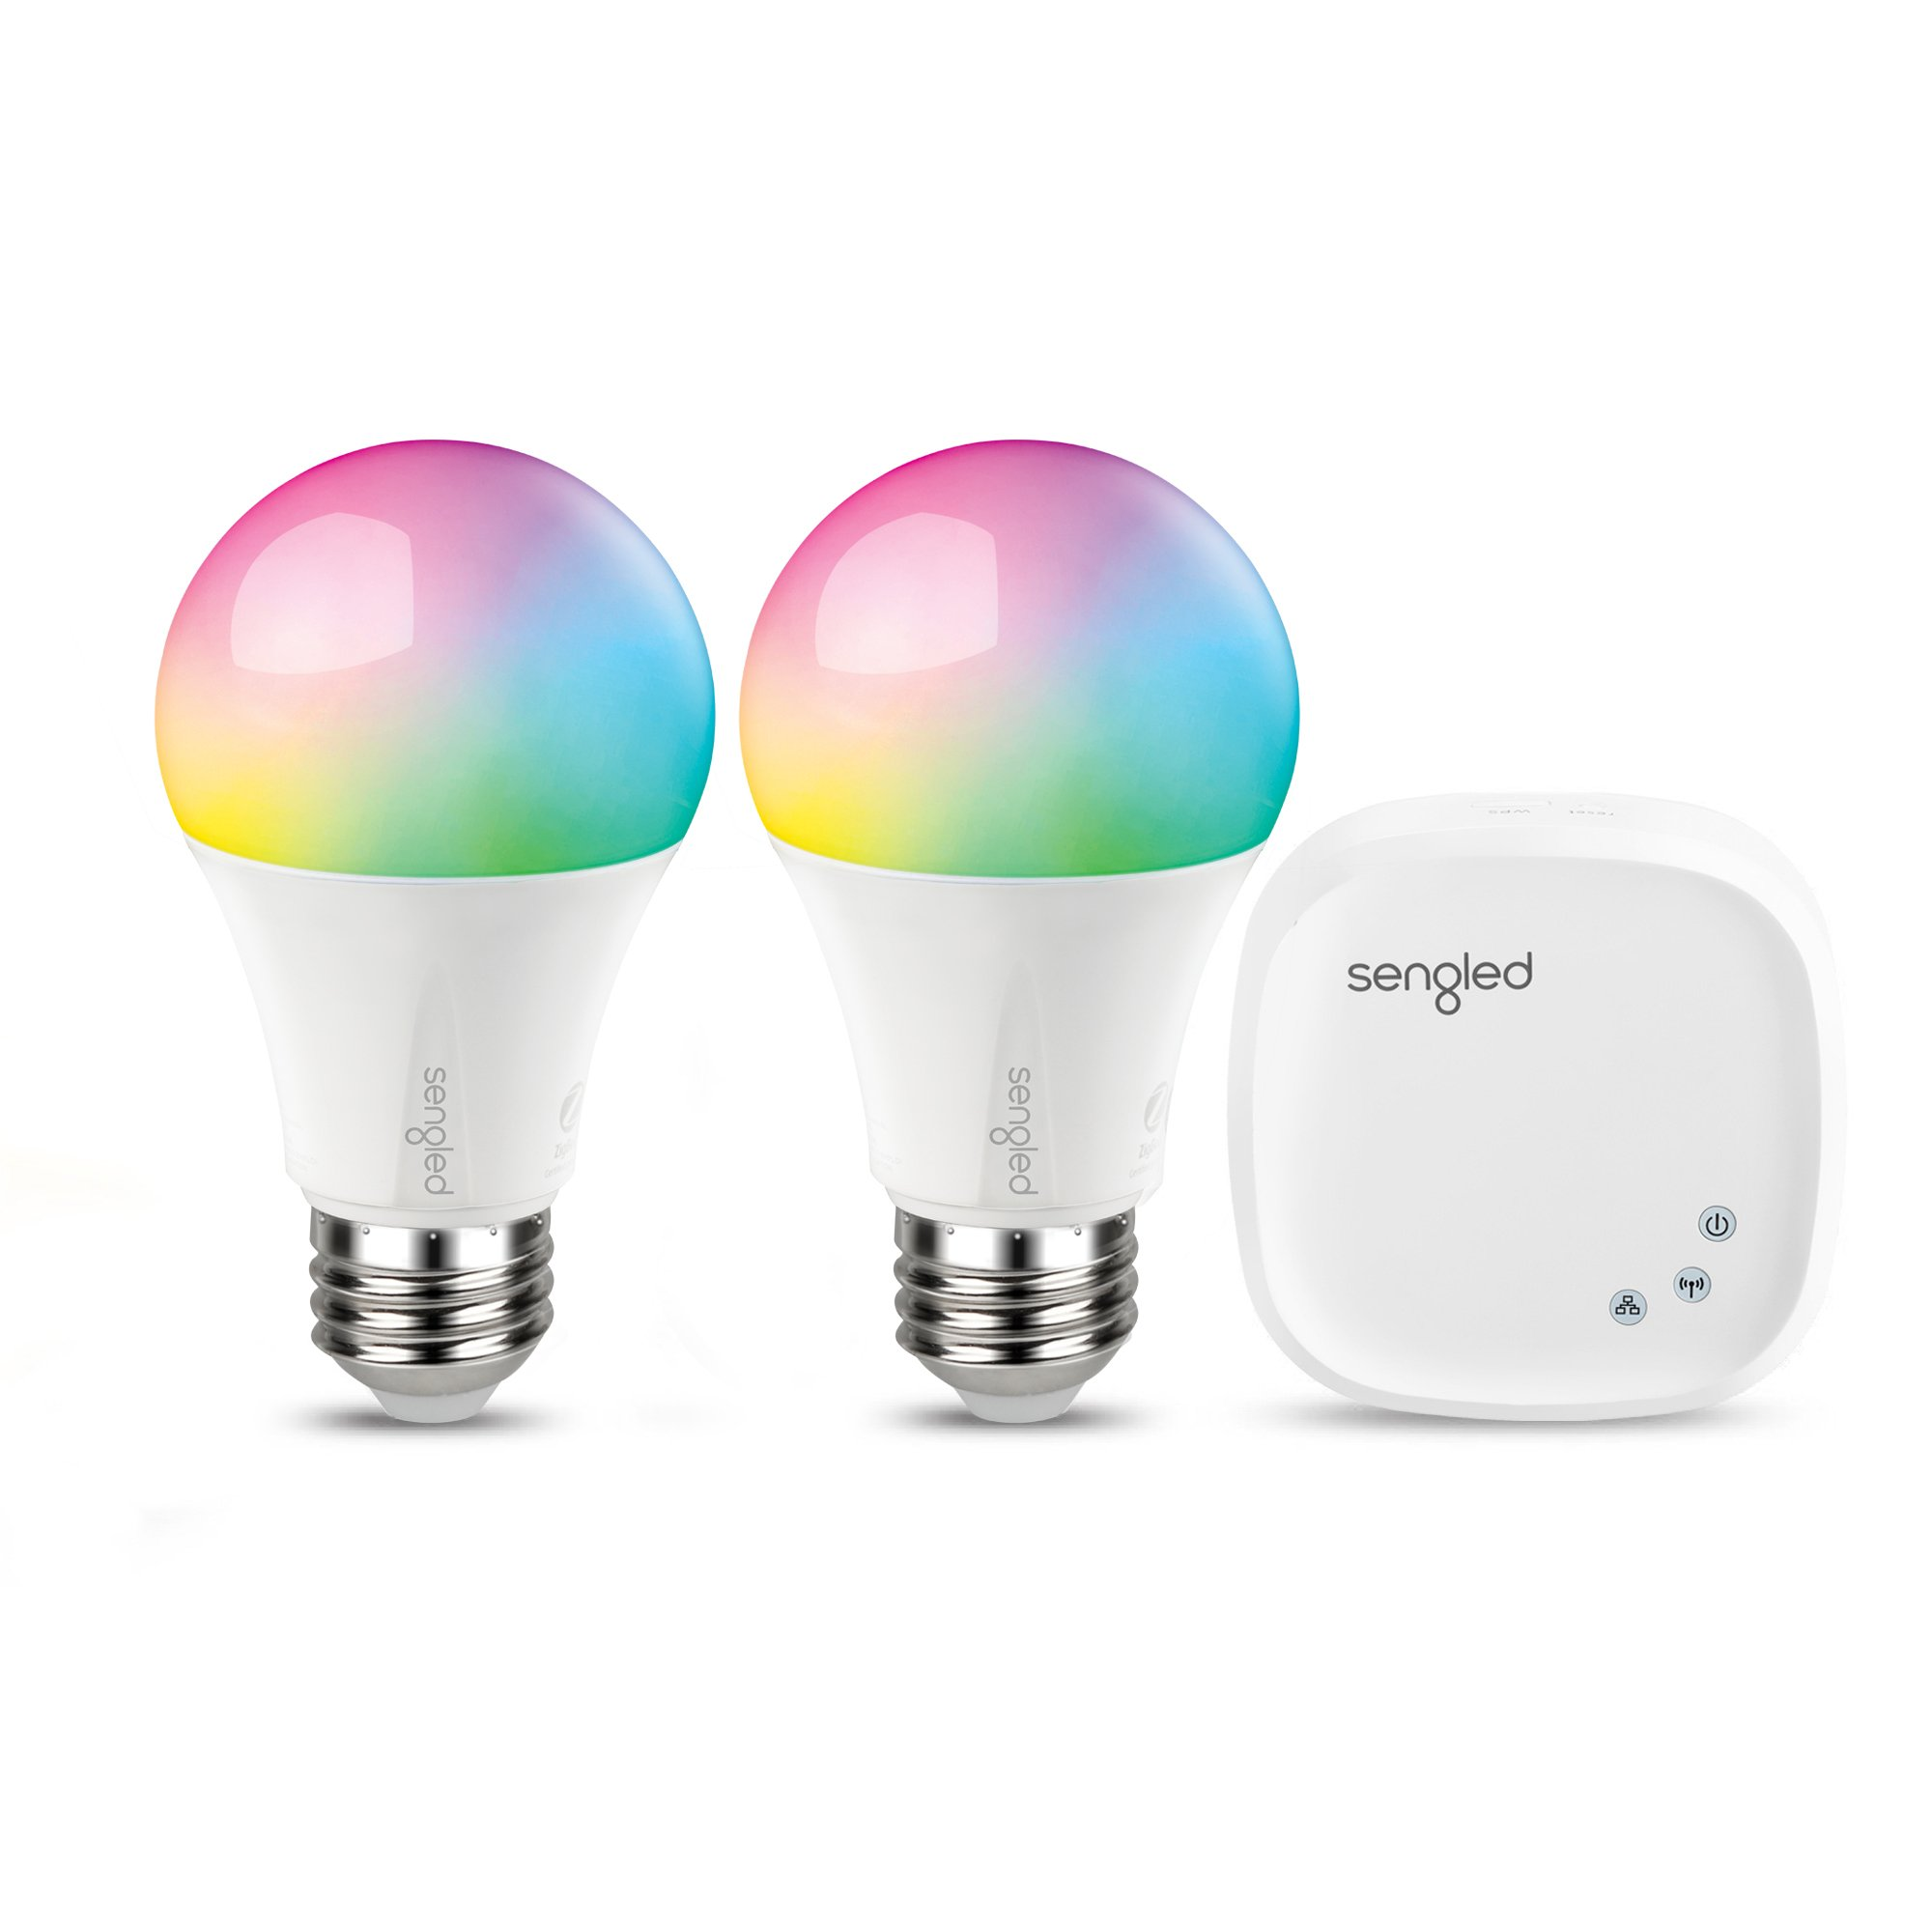 Sengled Element Color Plus Smart LED, A19 Dimmable Color Changing Light Bulb Starter Kit (2 bulbs + hub), RGBW 16 Million Colors & Tunable White 2000-6500K, Works with Alexa / Google Assistant / IFTTT